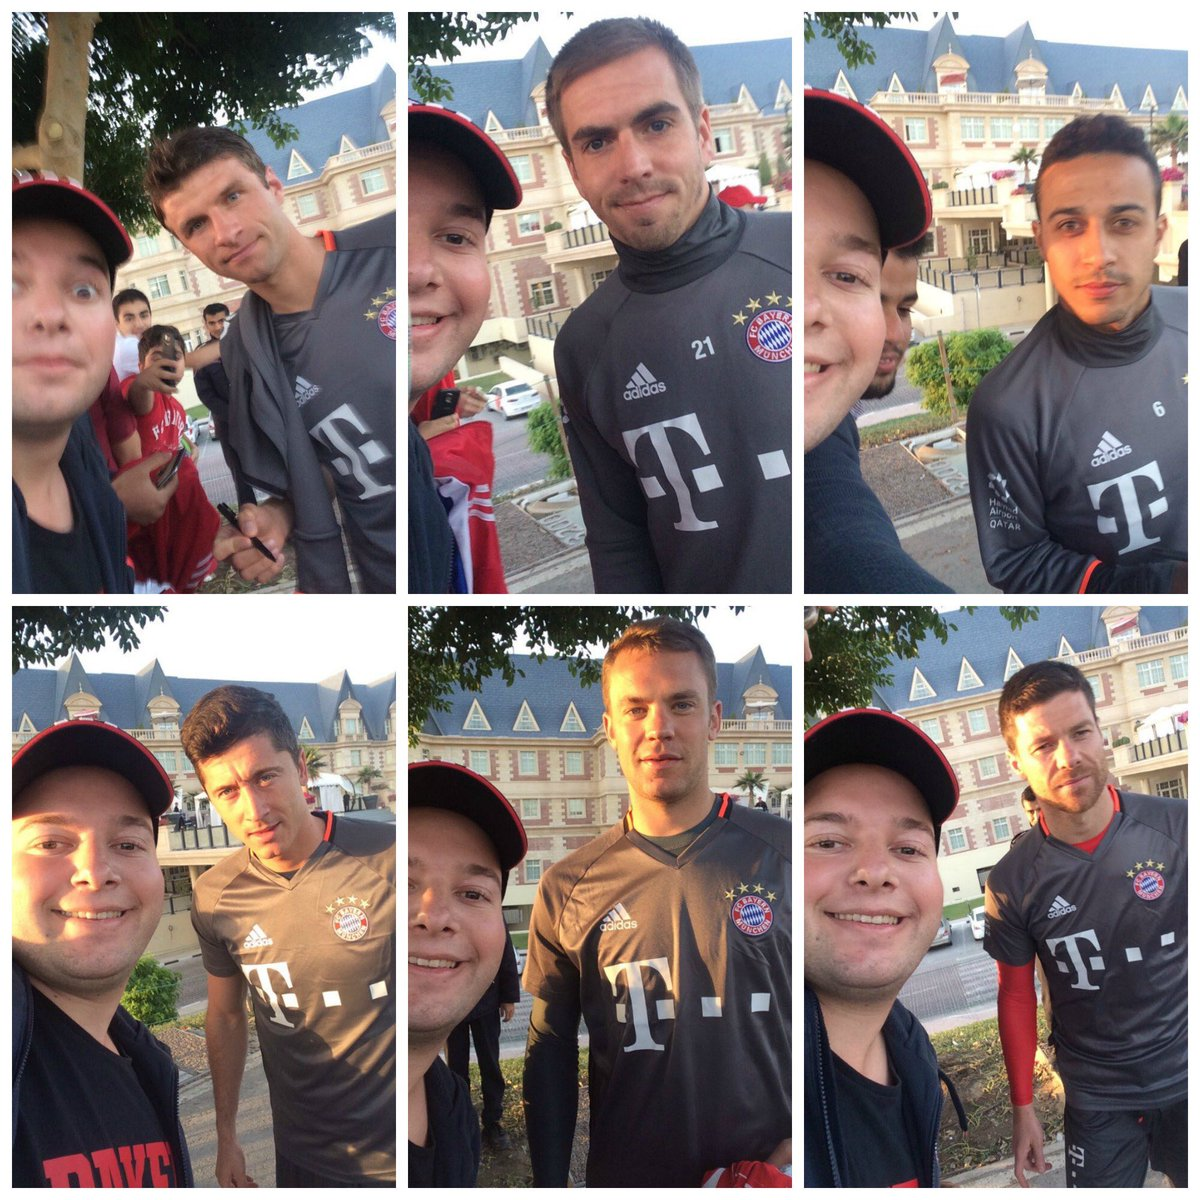 RT FCBayernEN 'RT adelfcb: In the #NationalSelfieDay its all about my...